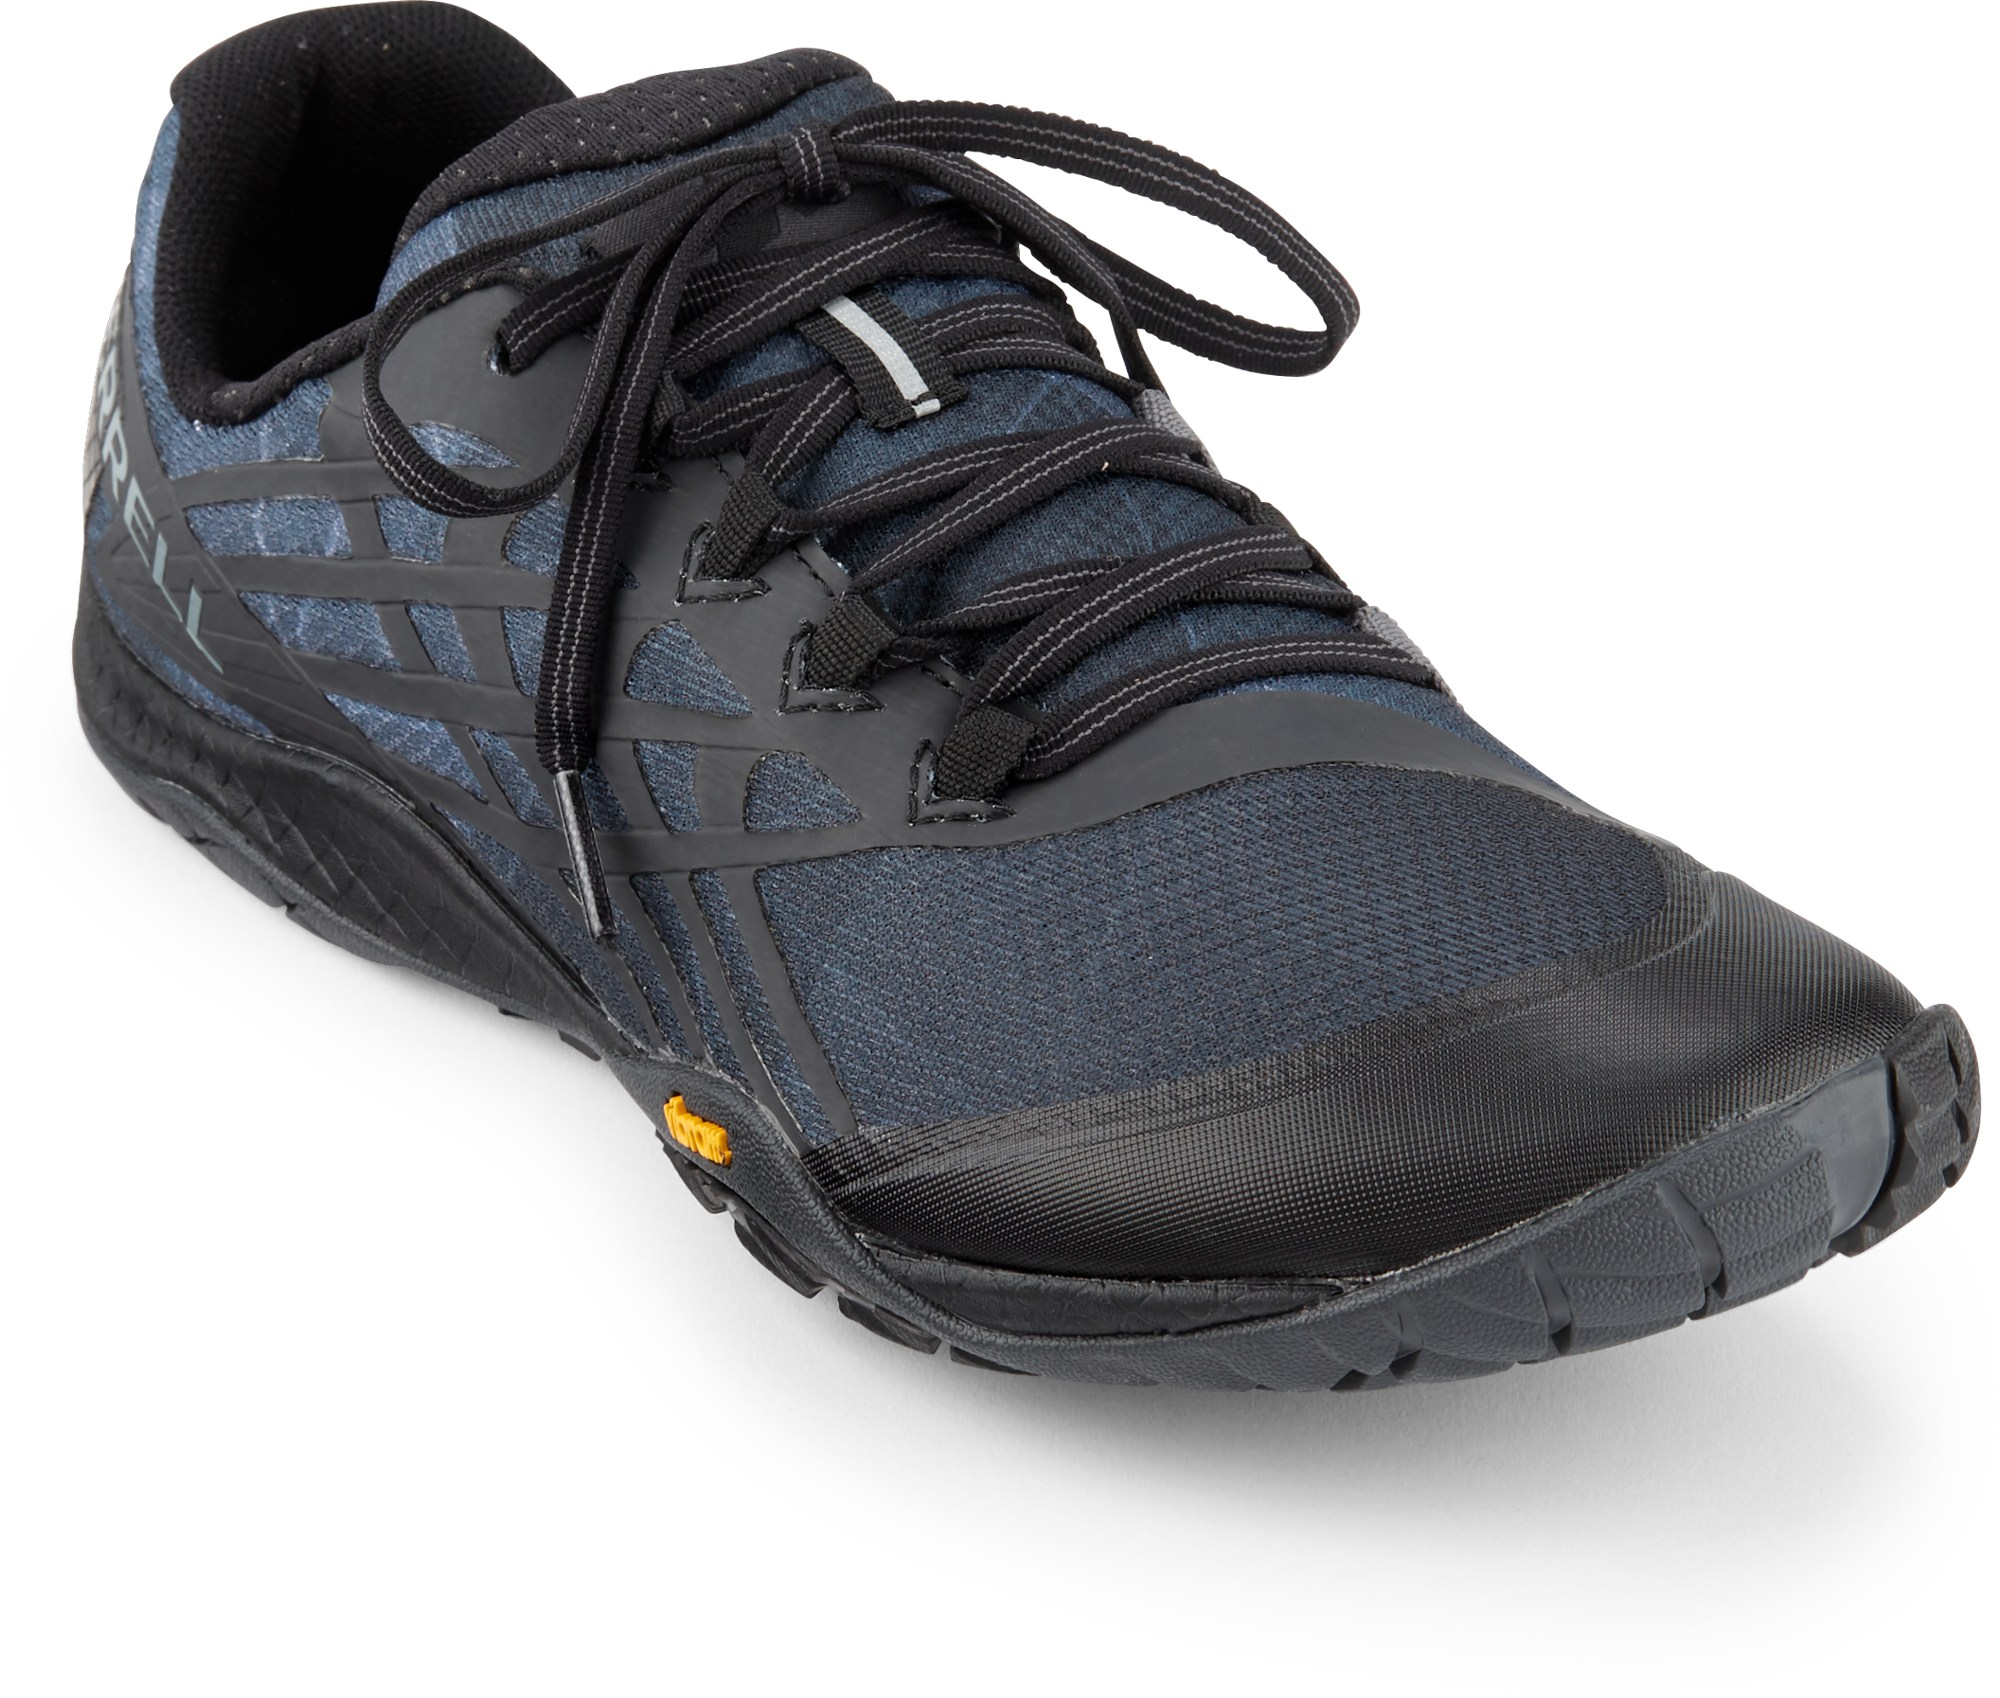 Merrell Trail Glove 4 Trail-Running Shoes - Men's